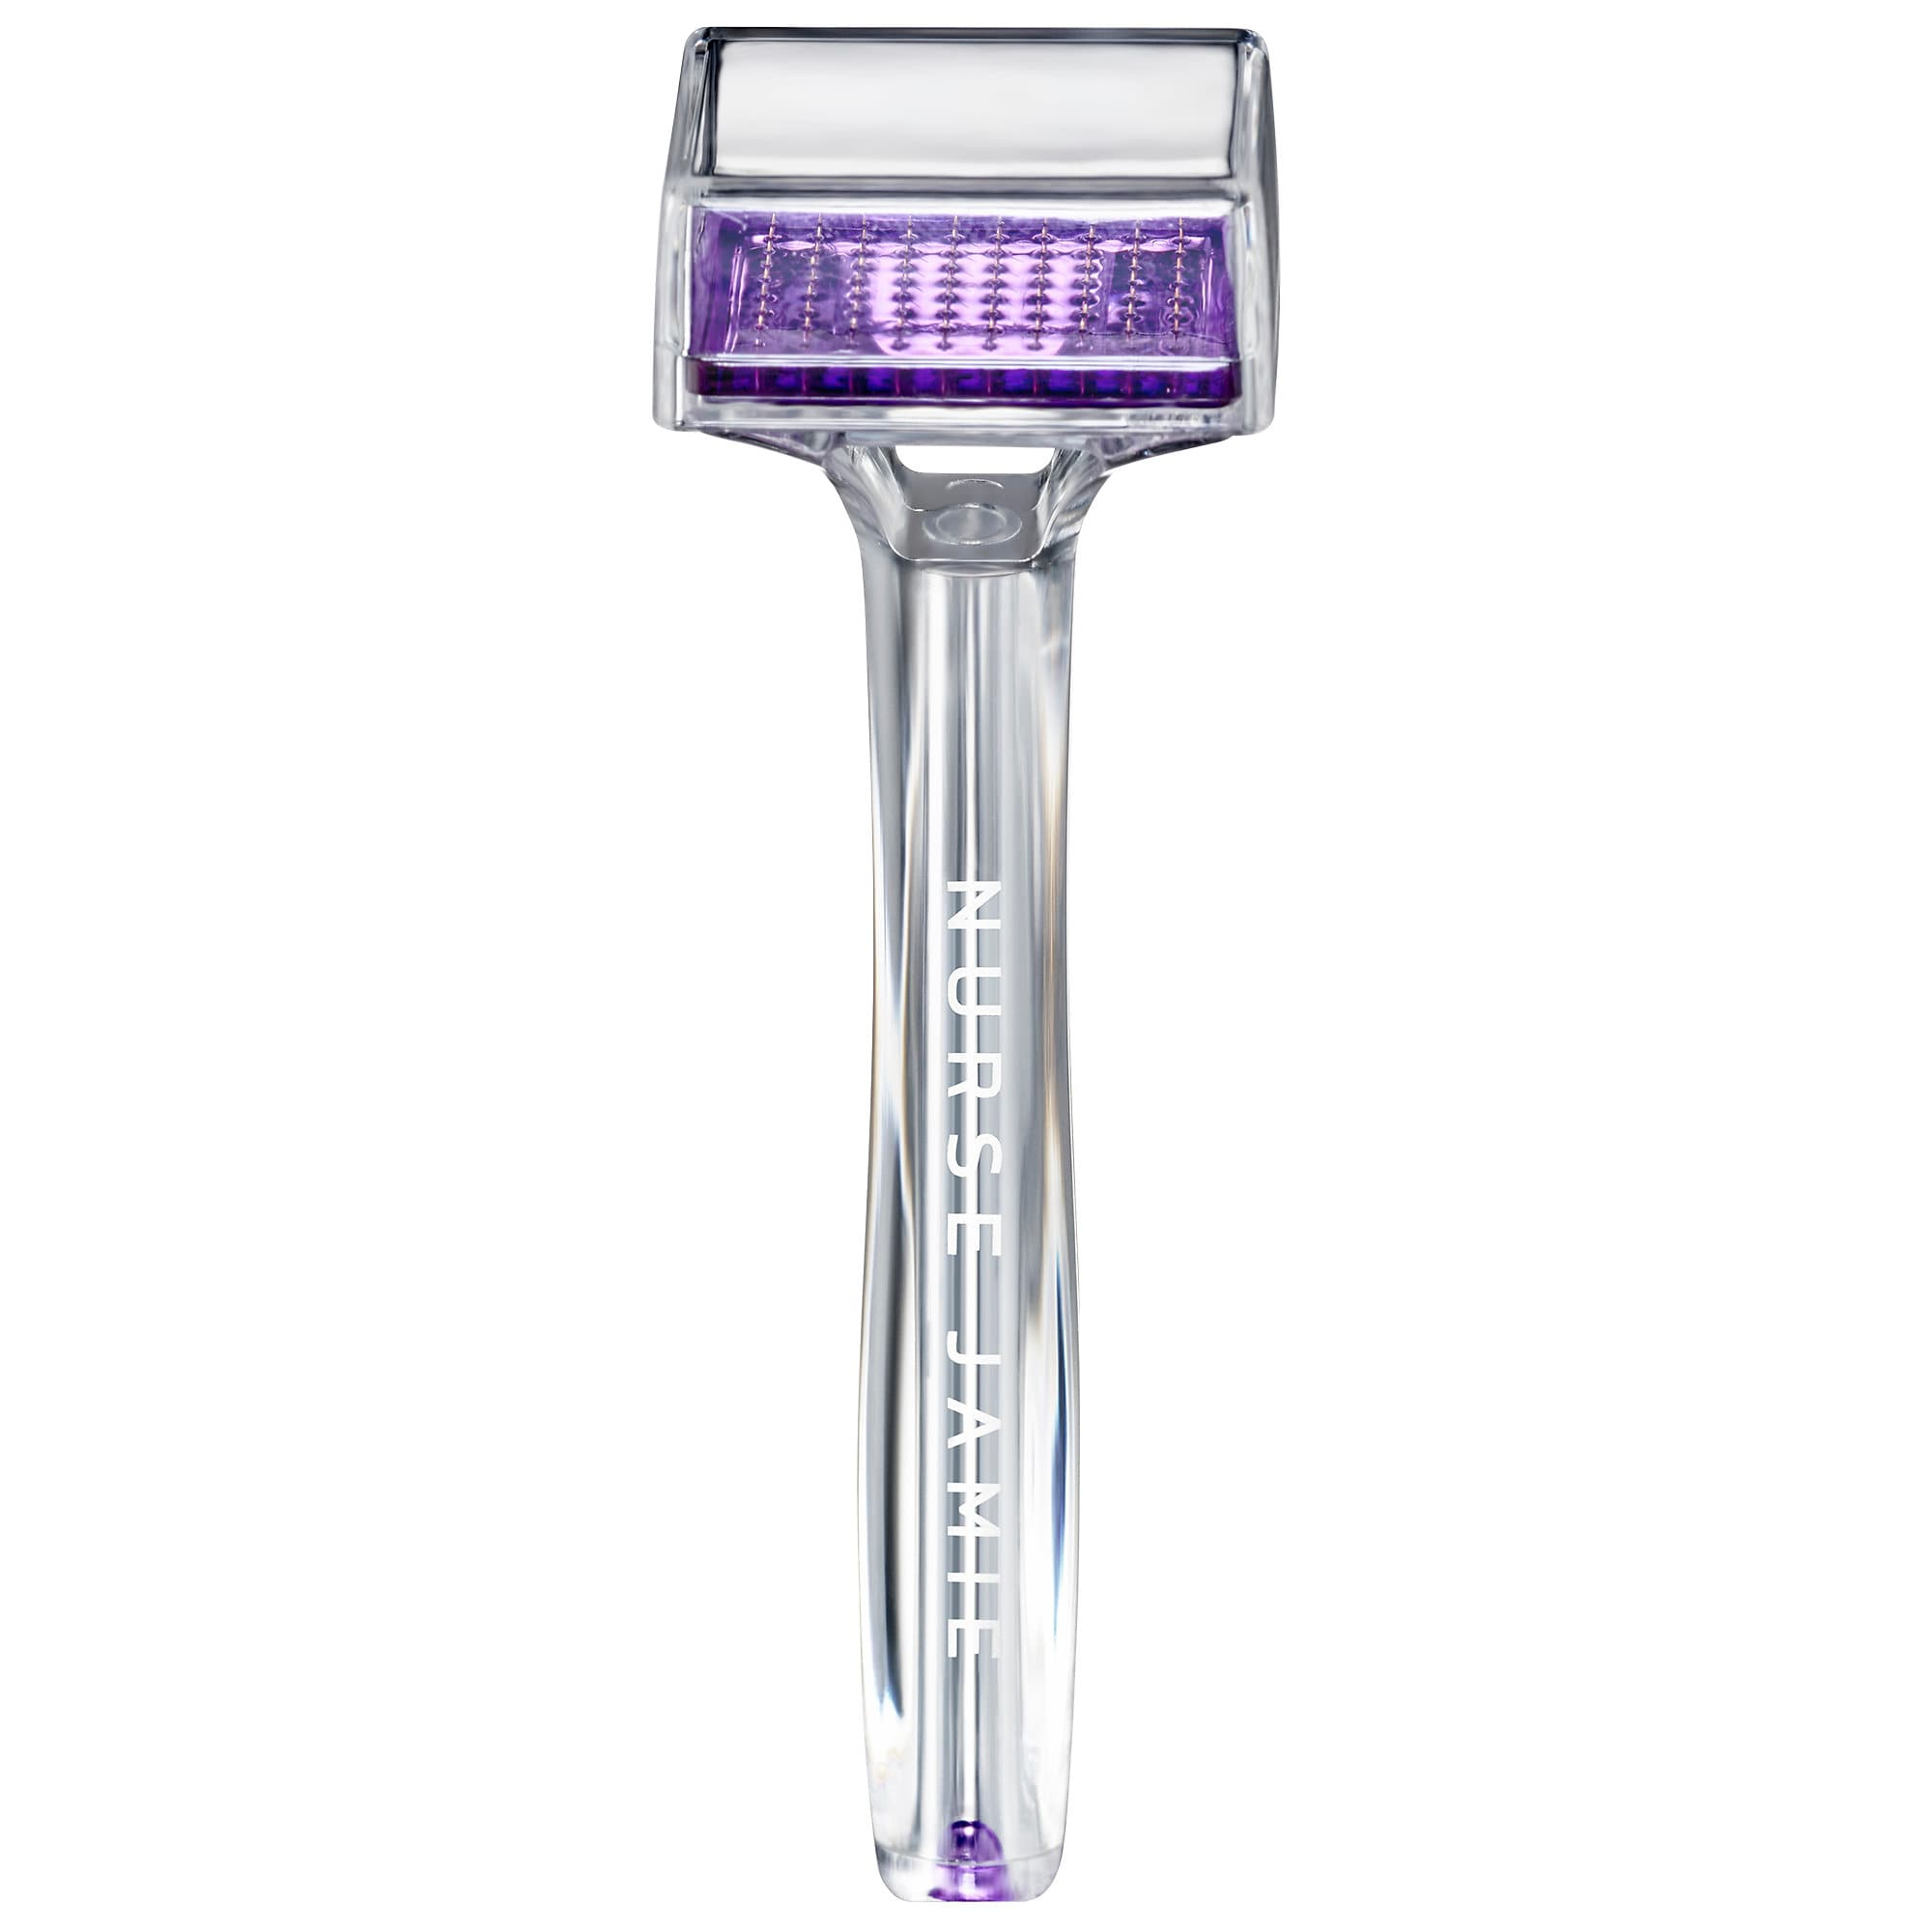 Beauty Stamp Micro-Exfoliation Tool